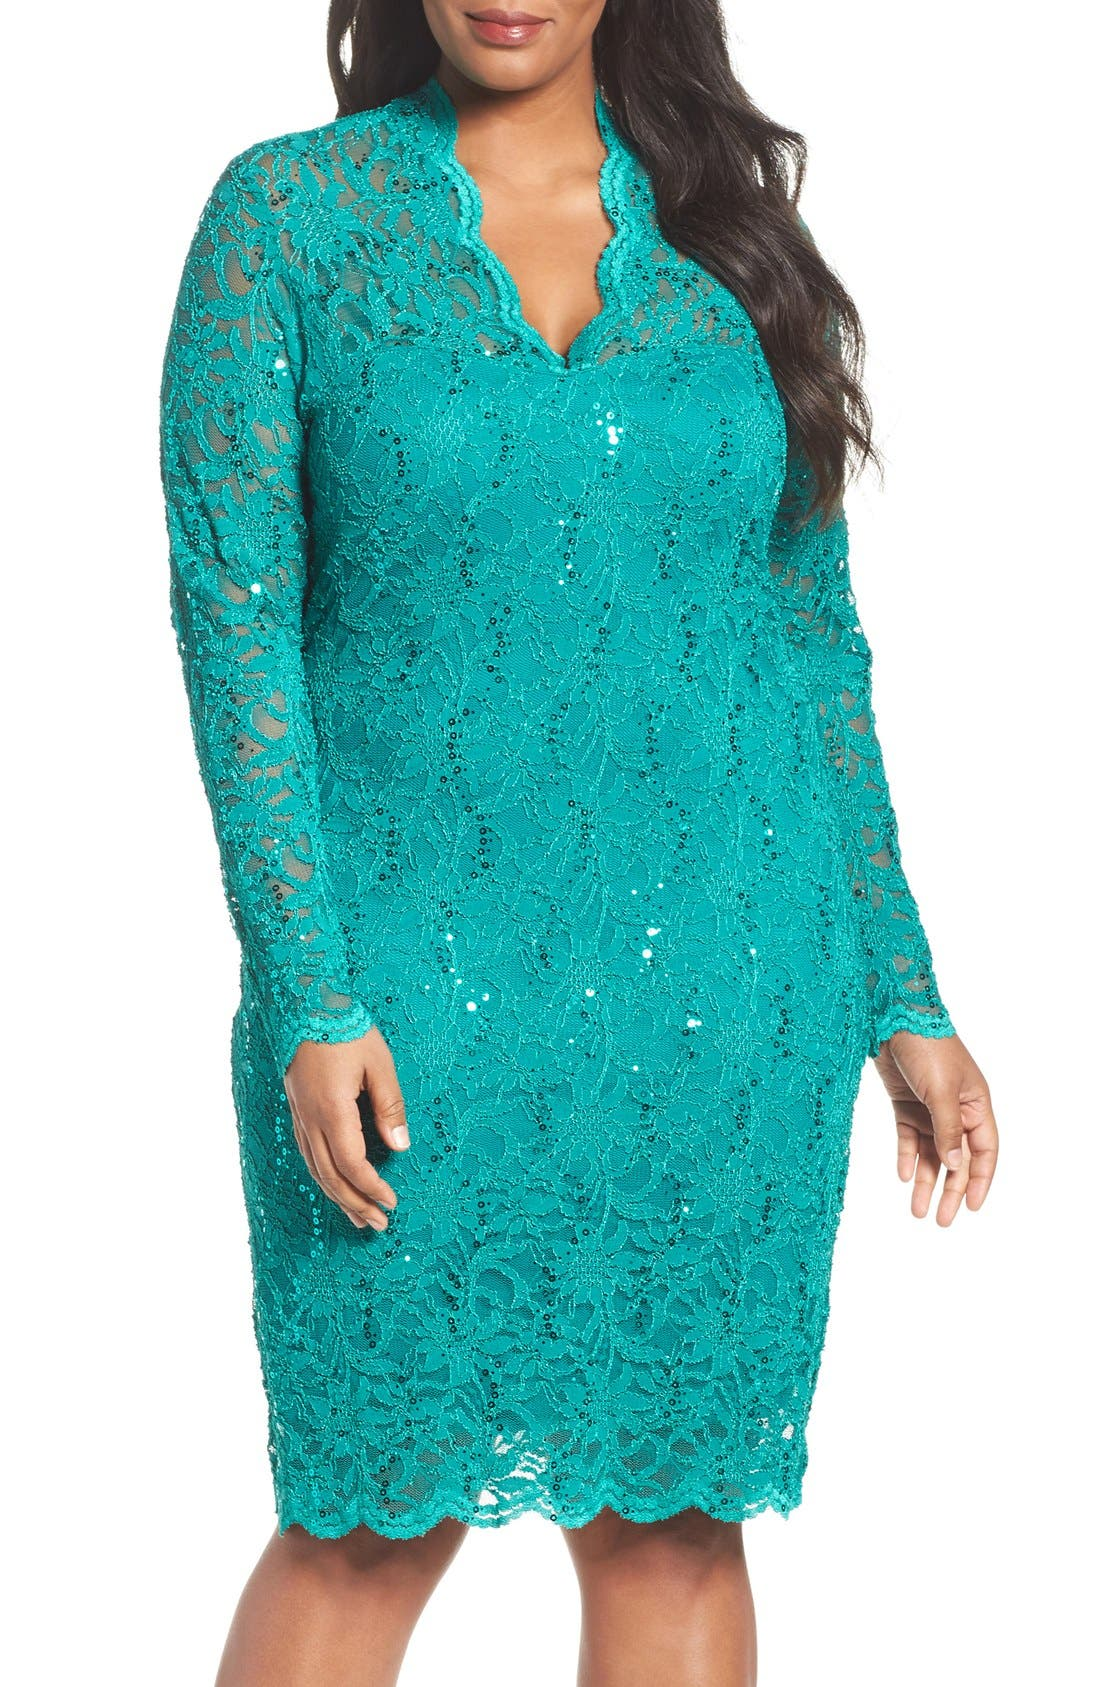 Marina Sequin Stretch Lace Sheath Dress (Plus Size)